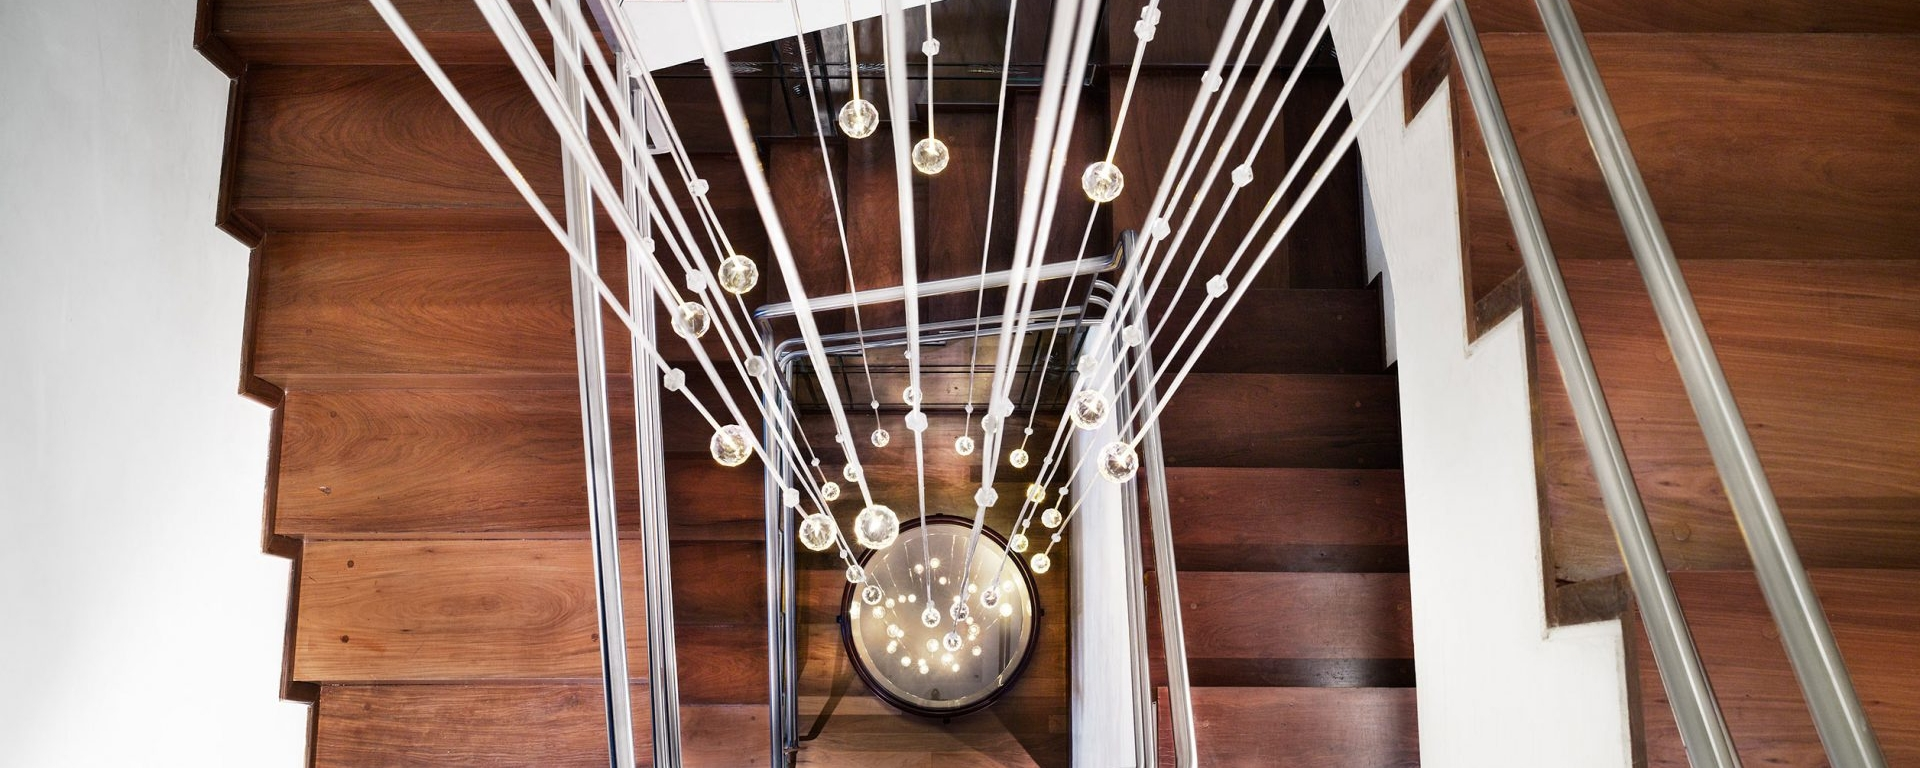 looking down a staircase with hanging lightbulbs